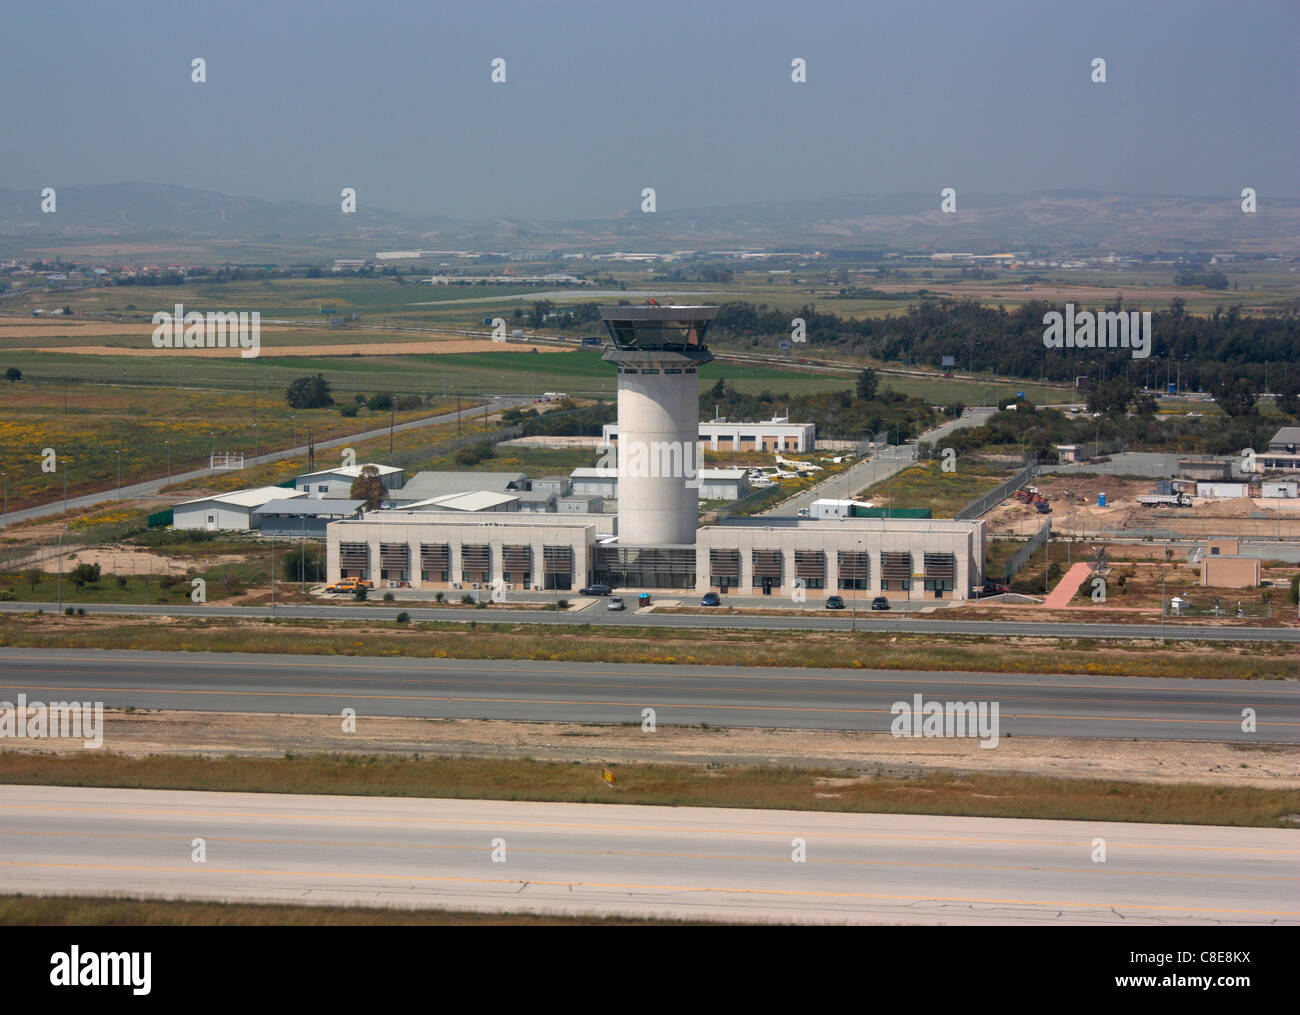 The control tower at Cyprus Larnaca International Airport - Stock Image